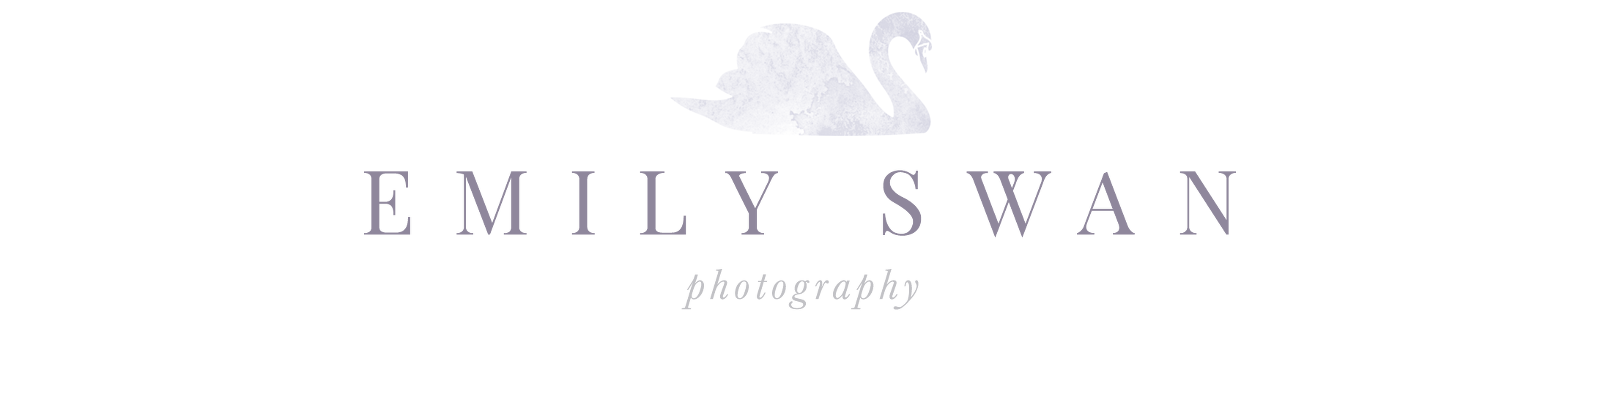 Emily Swan Photography logo